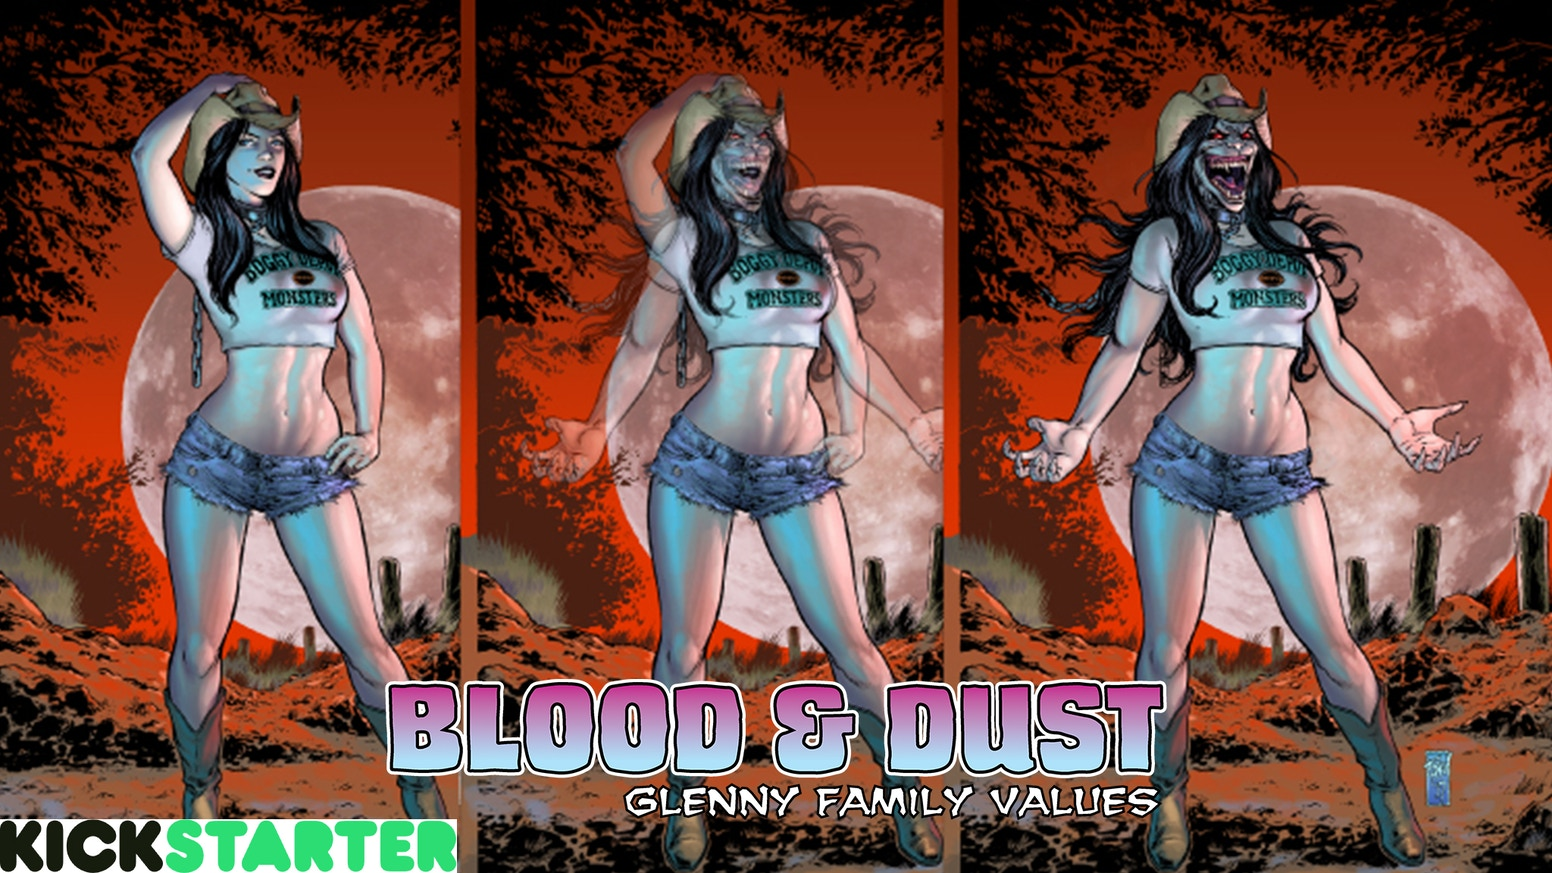 The critically acclaimed vampire horror story Blood & Dust is back to finish what it started with The Life & Undeath of Judd Glenny.